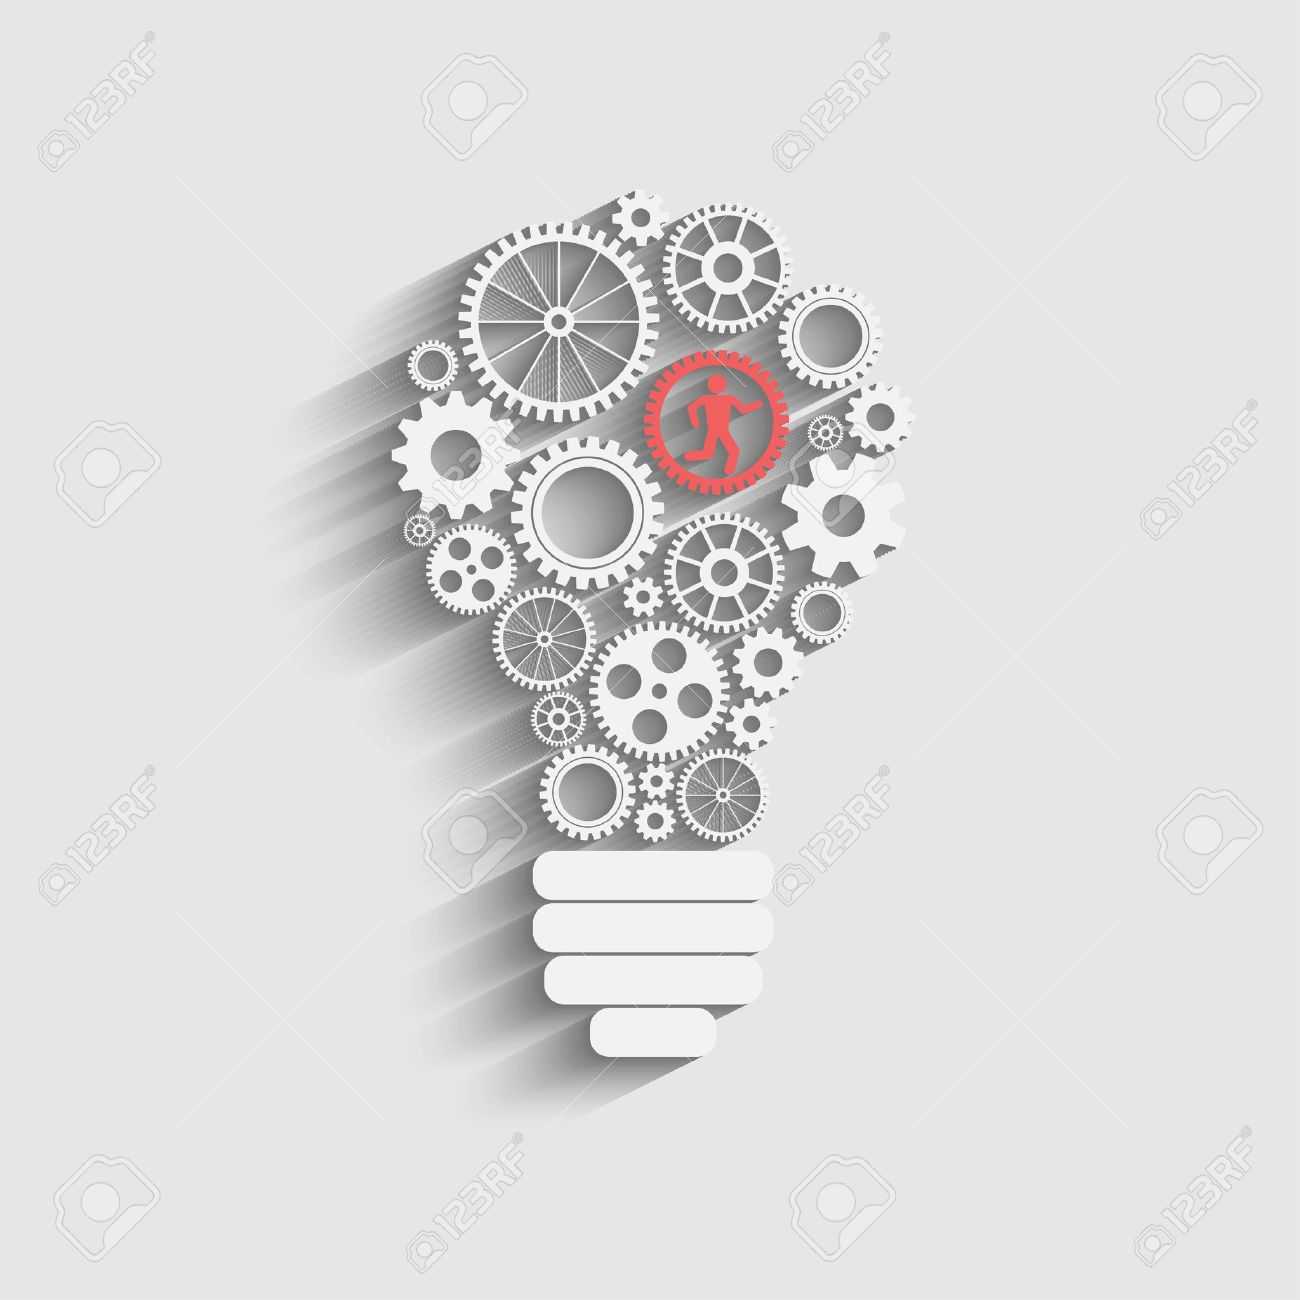 light bulb with gears and cogs working together - 27361773